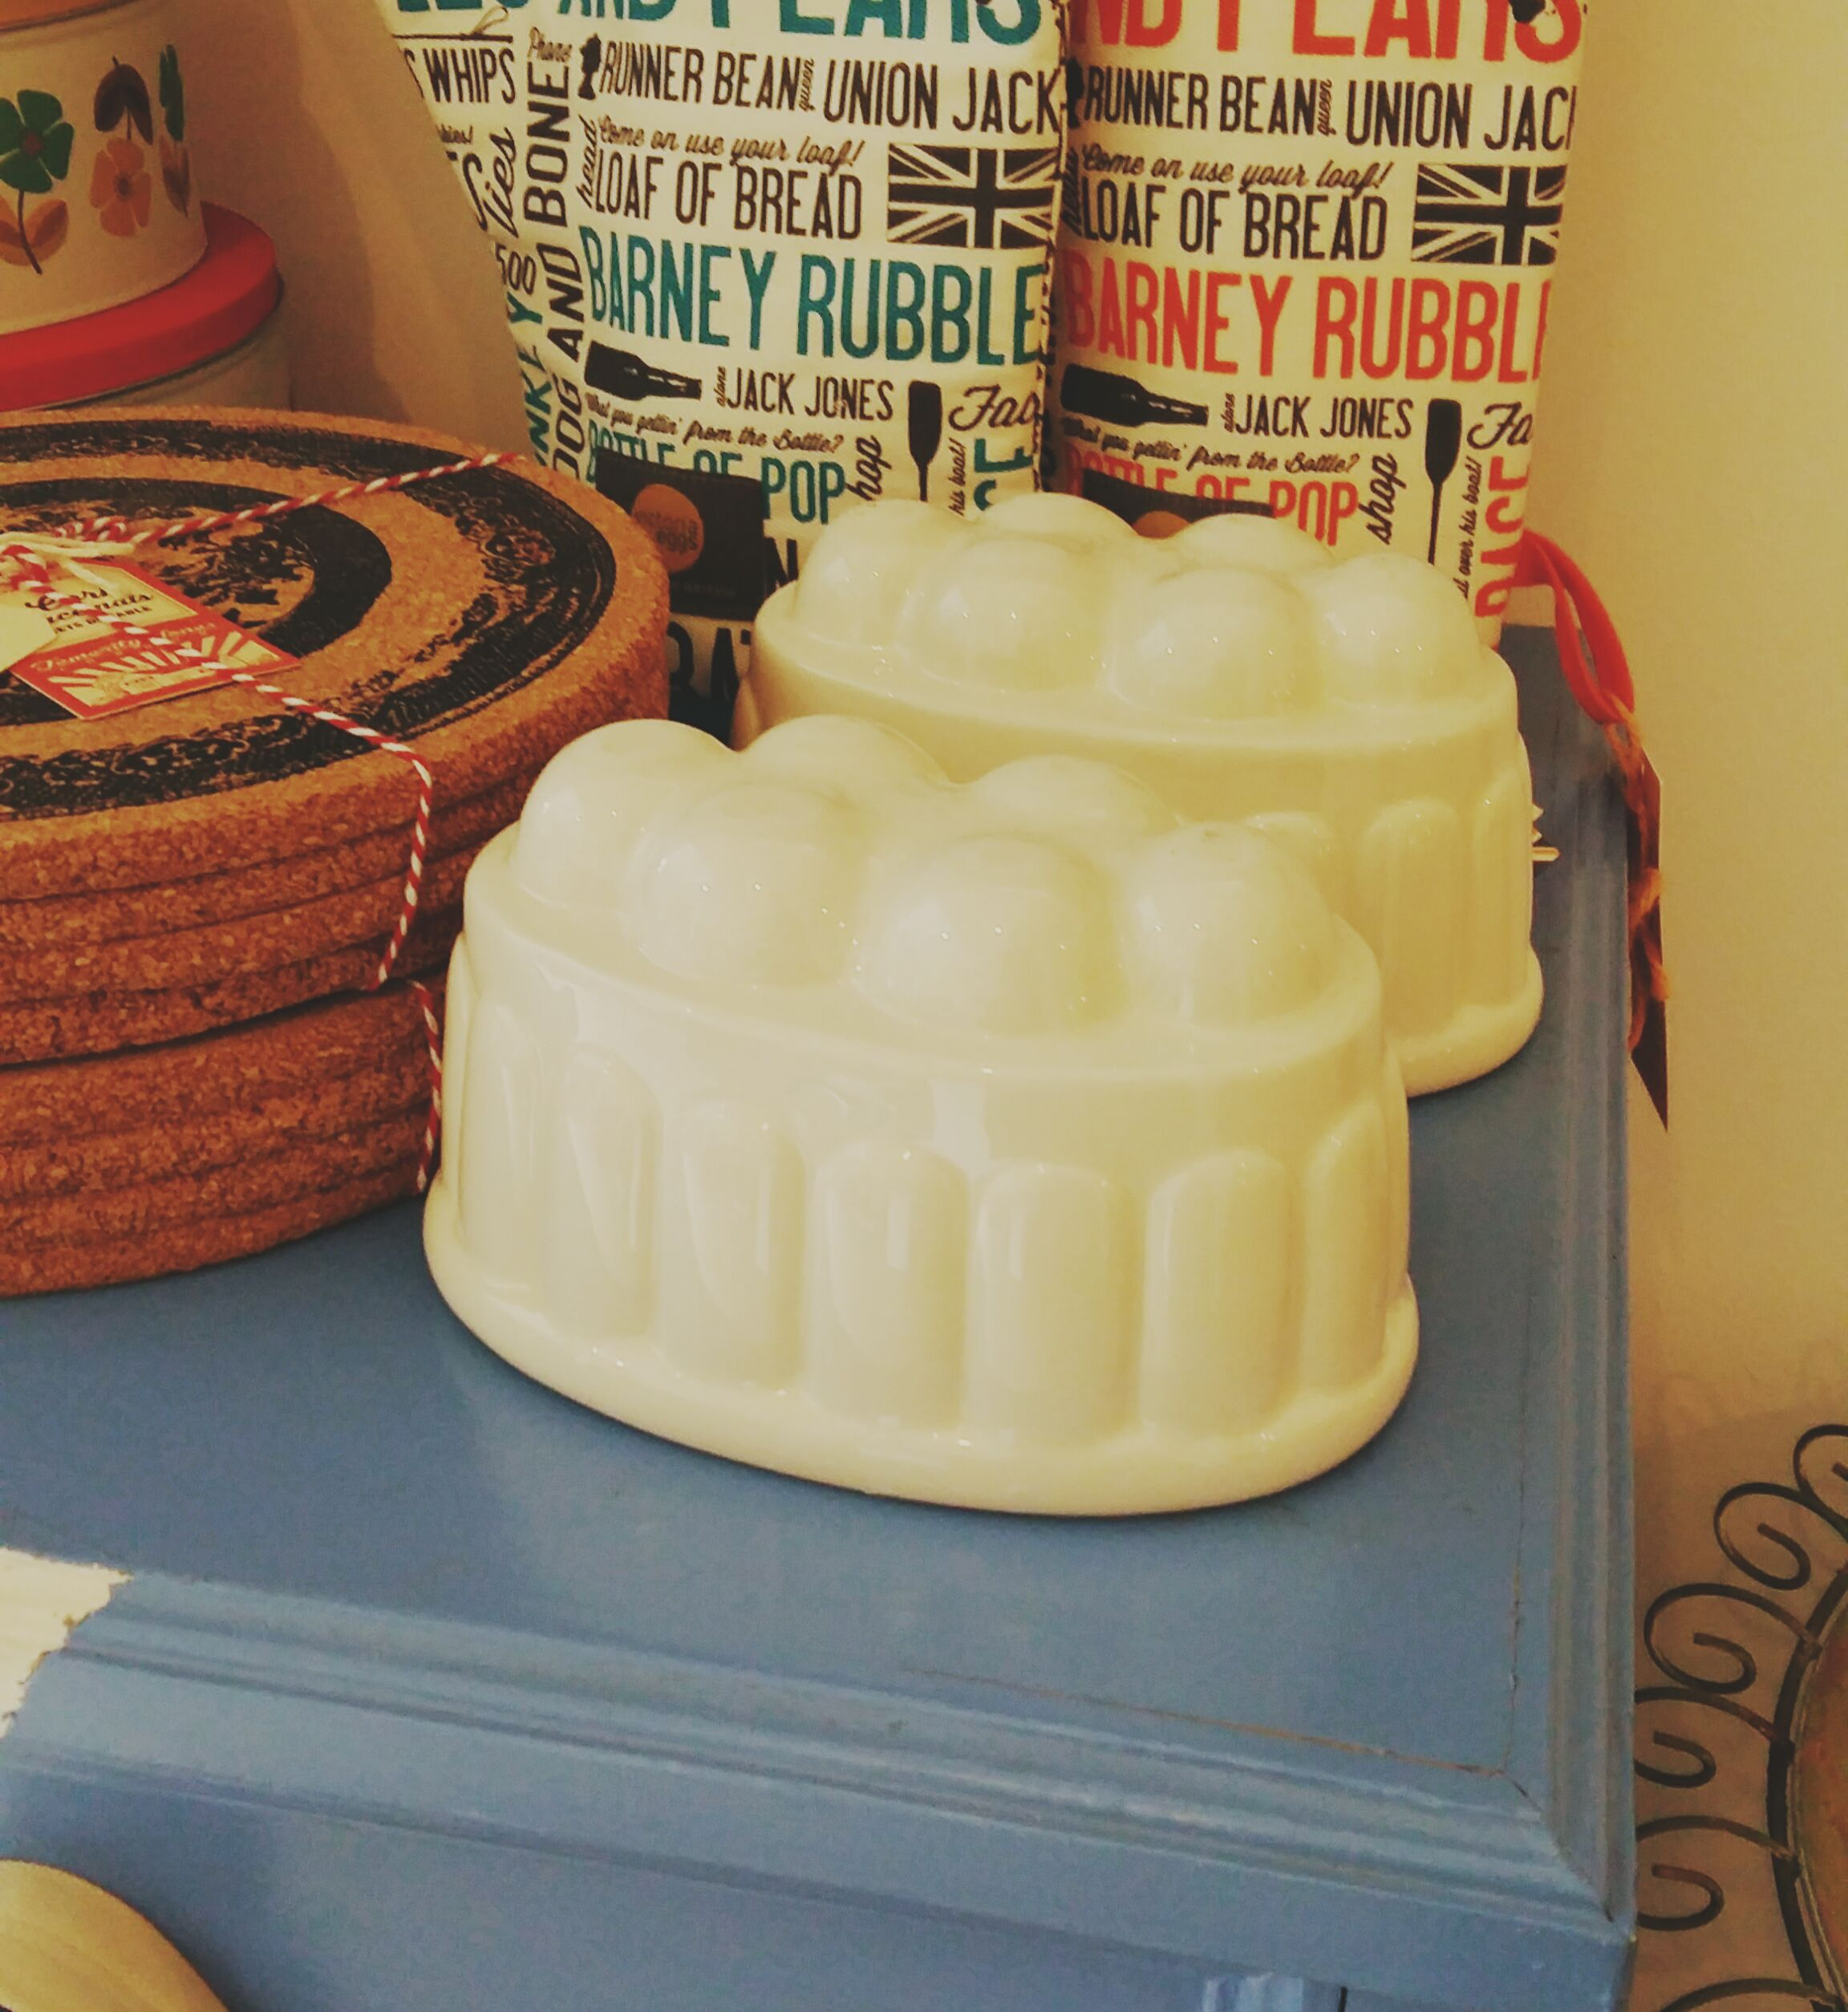 Ceramic jelly moulds